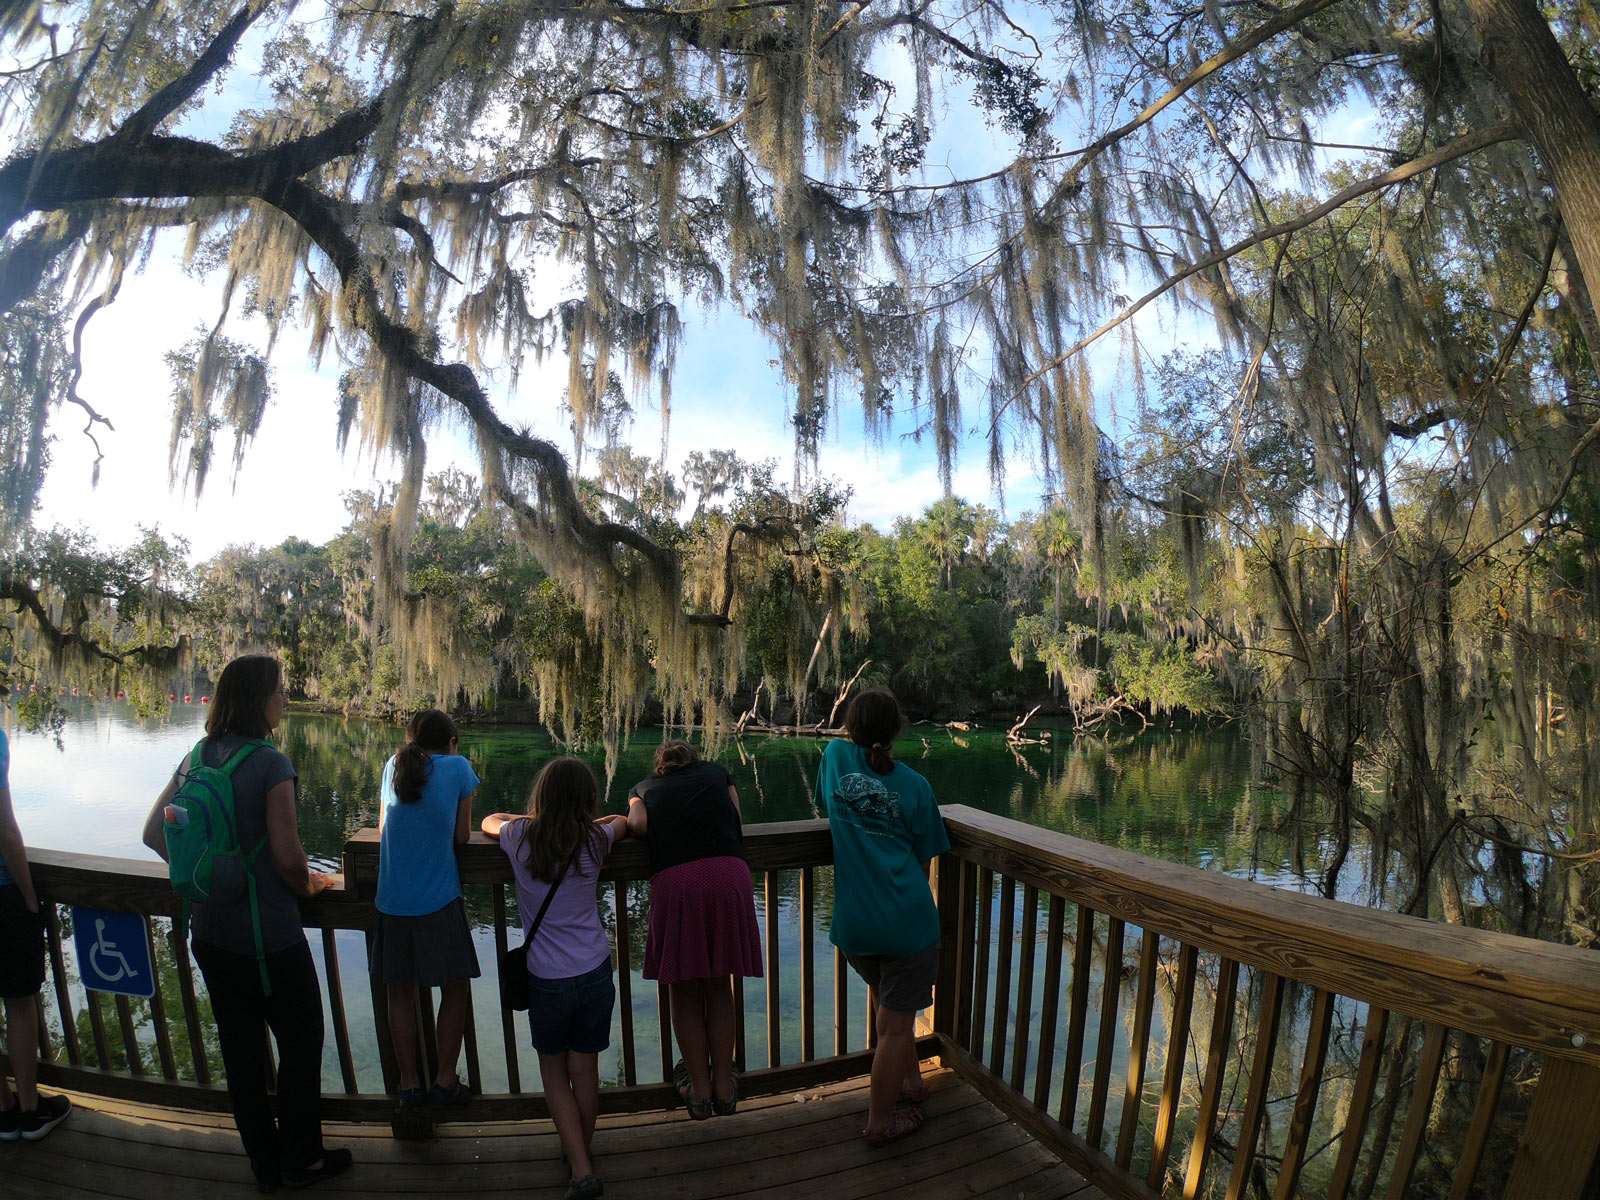 Under live oaks draped in Spanish moss, five people on deck look for manatees at Blue Spring State Park, Florida